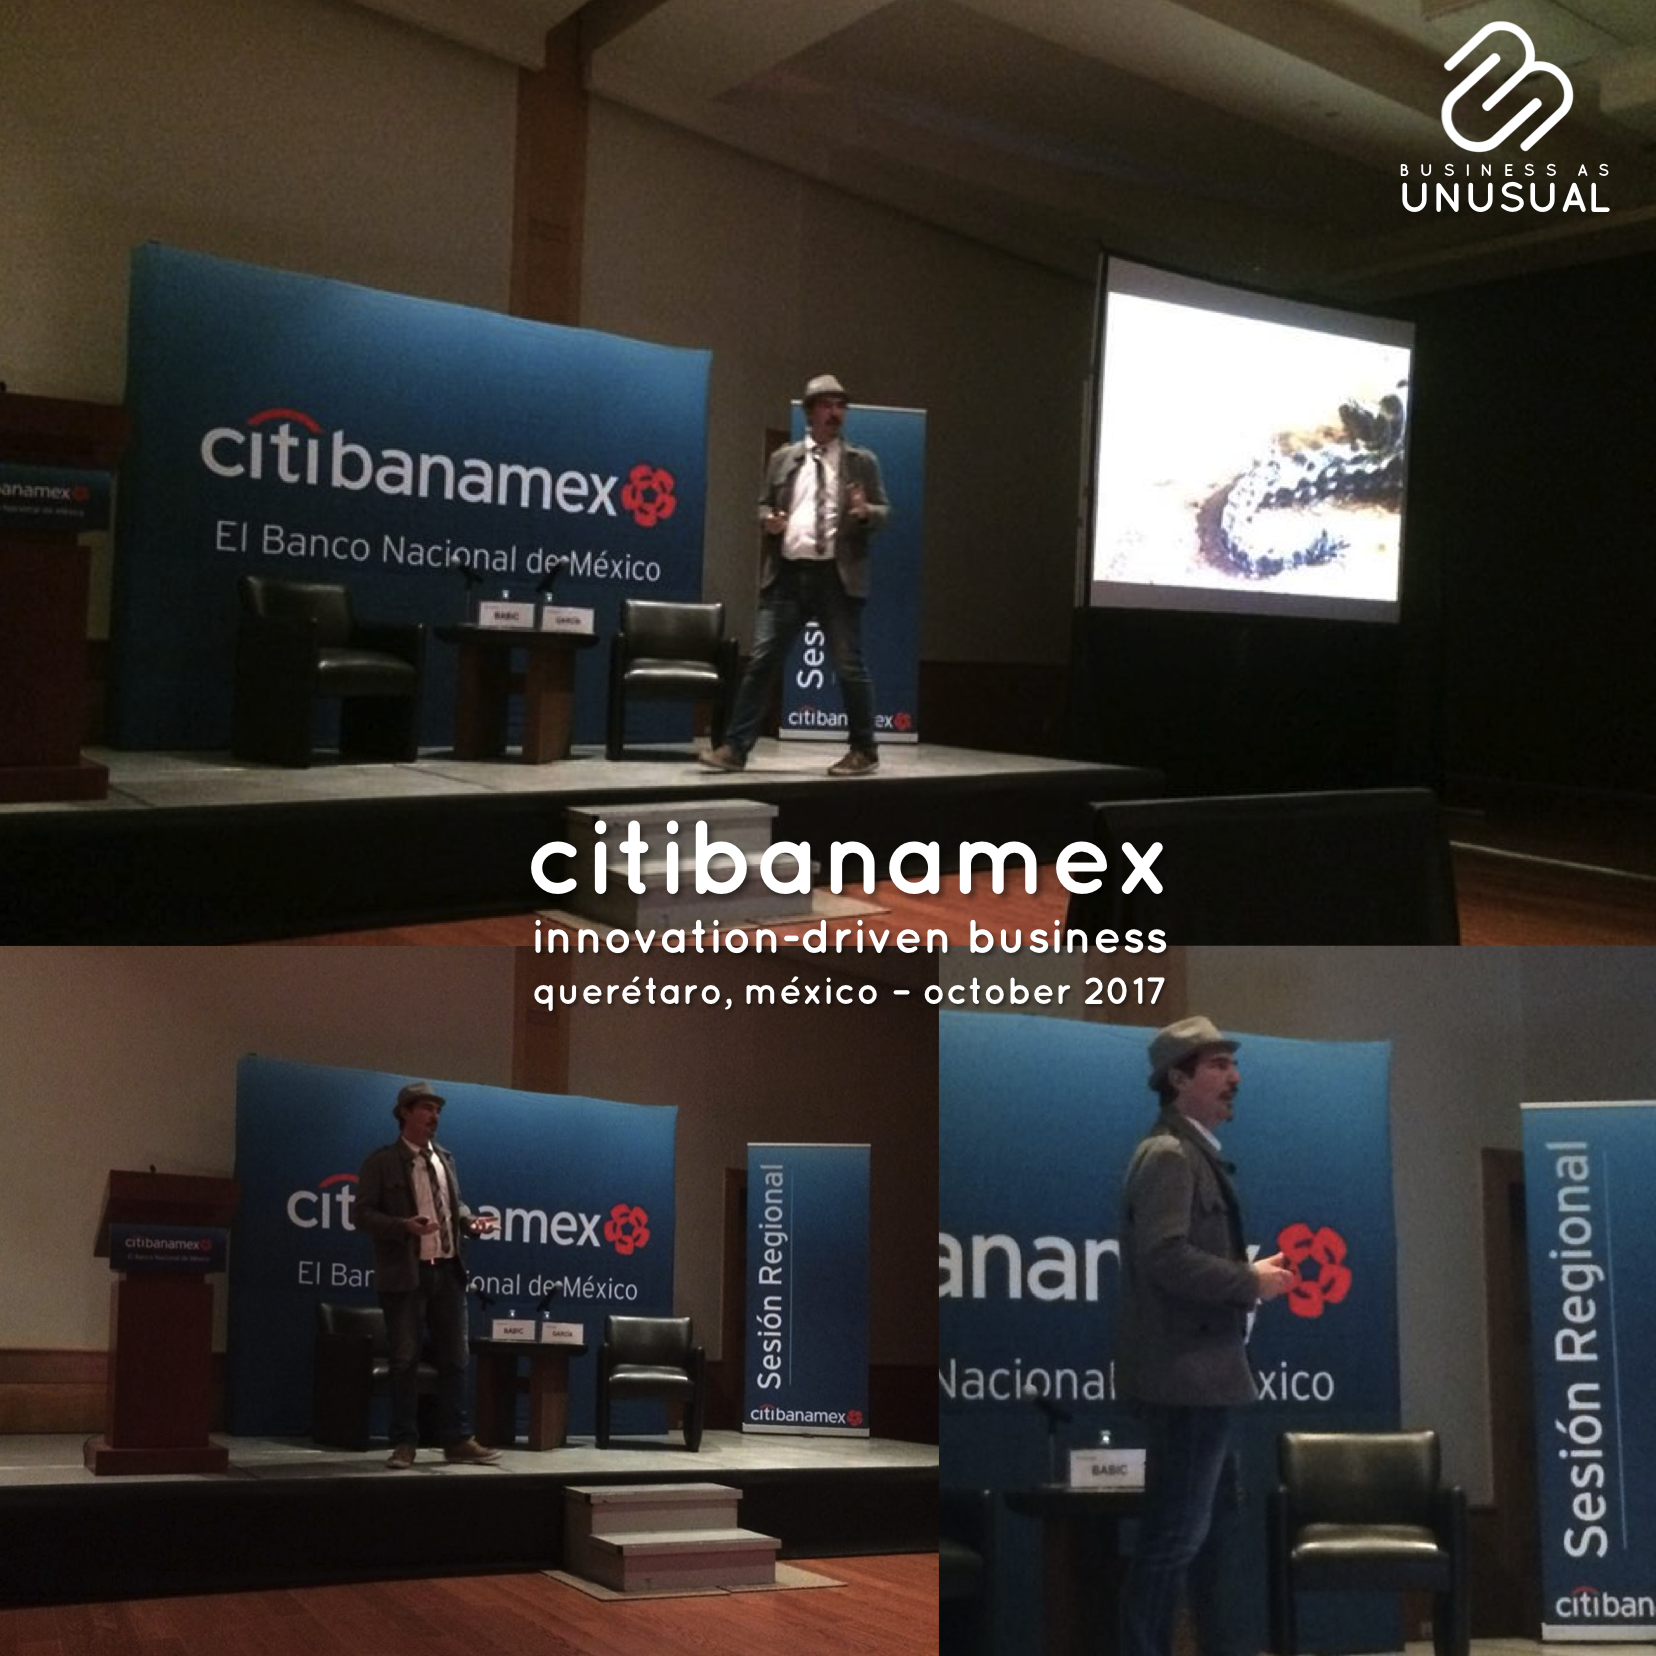 Citibanamex - Innovation-Driven Business - Querétaro